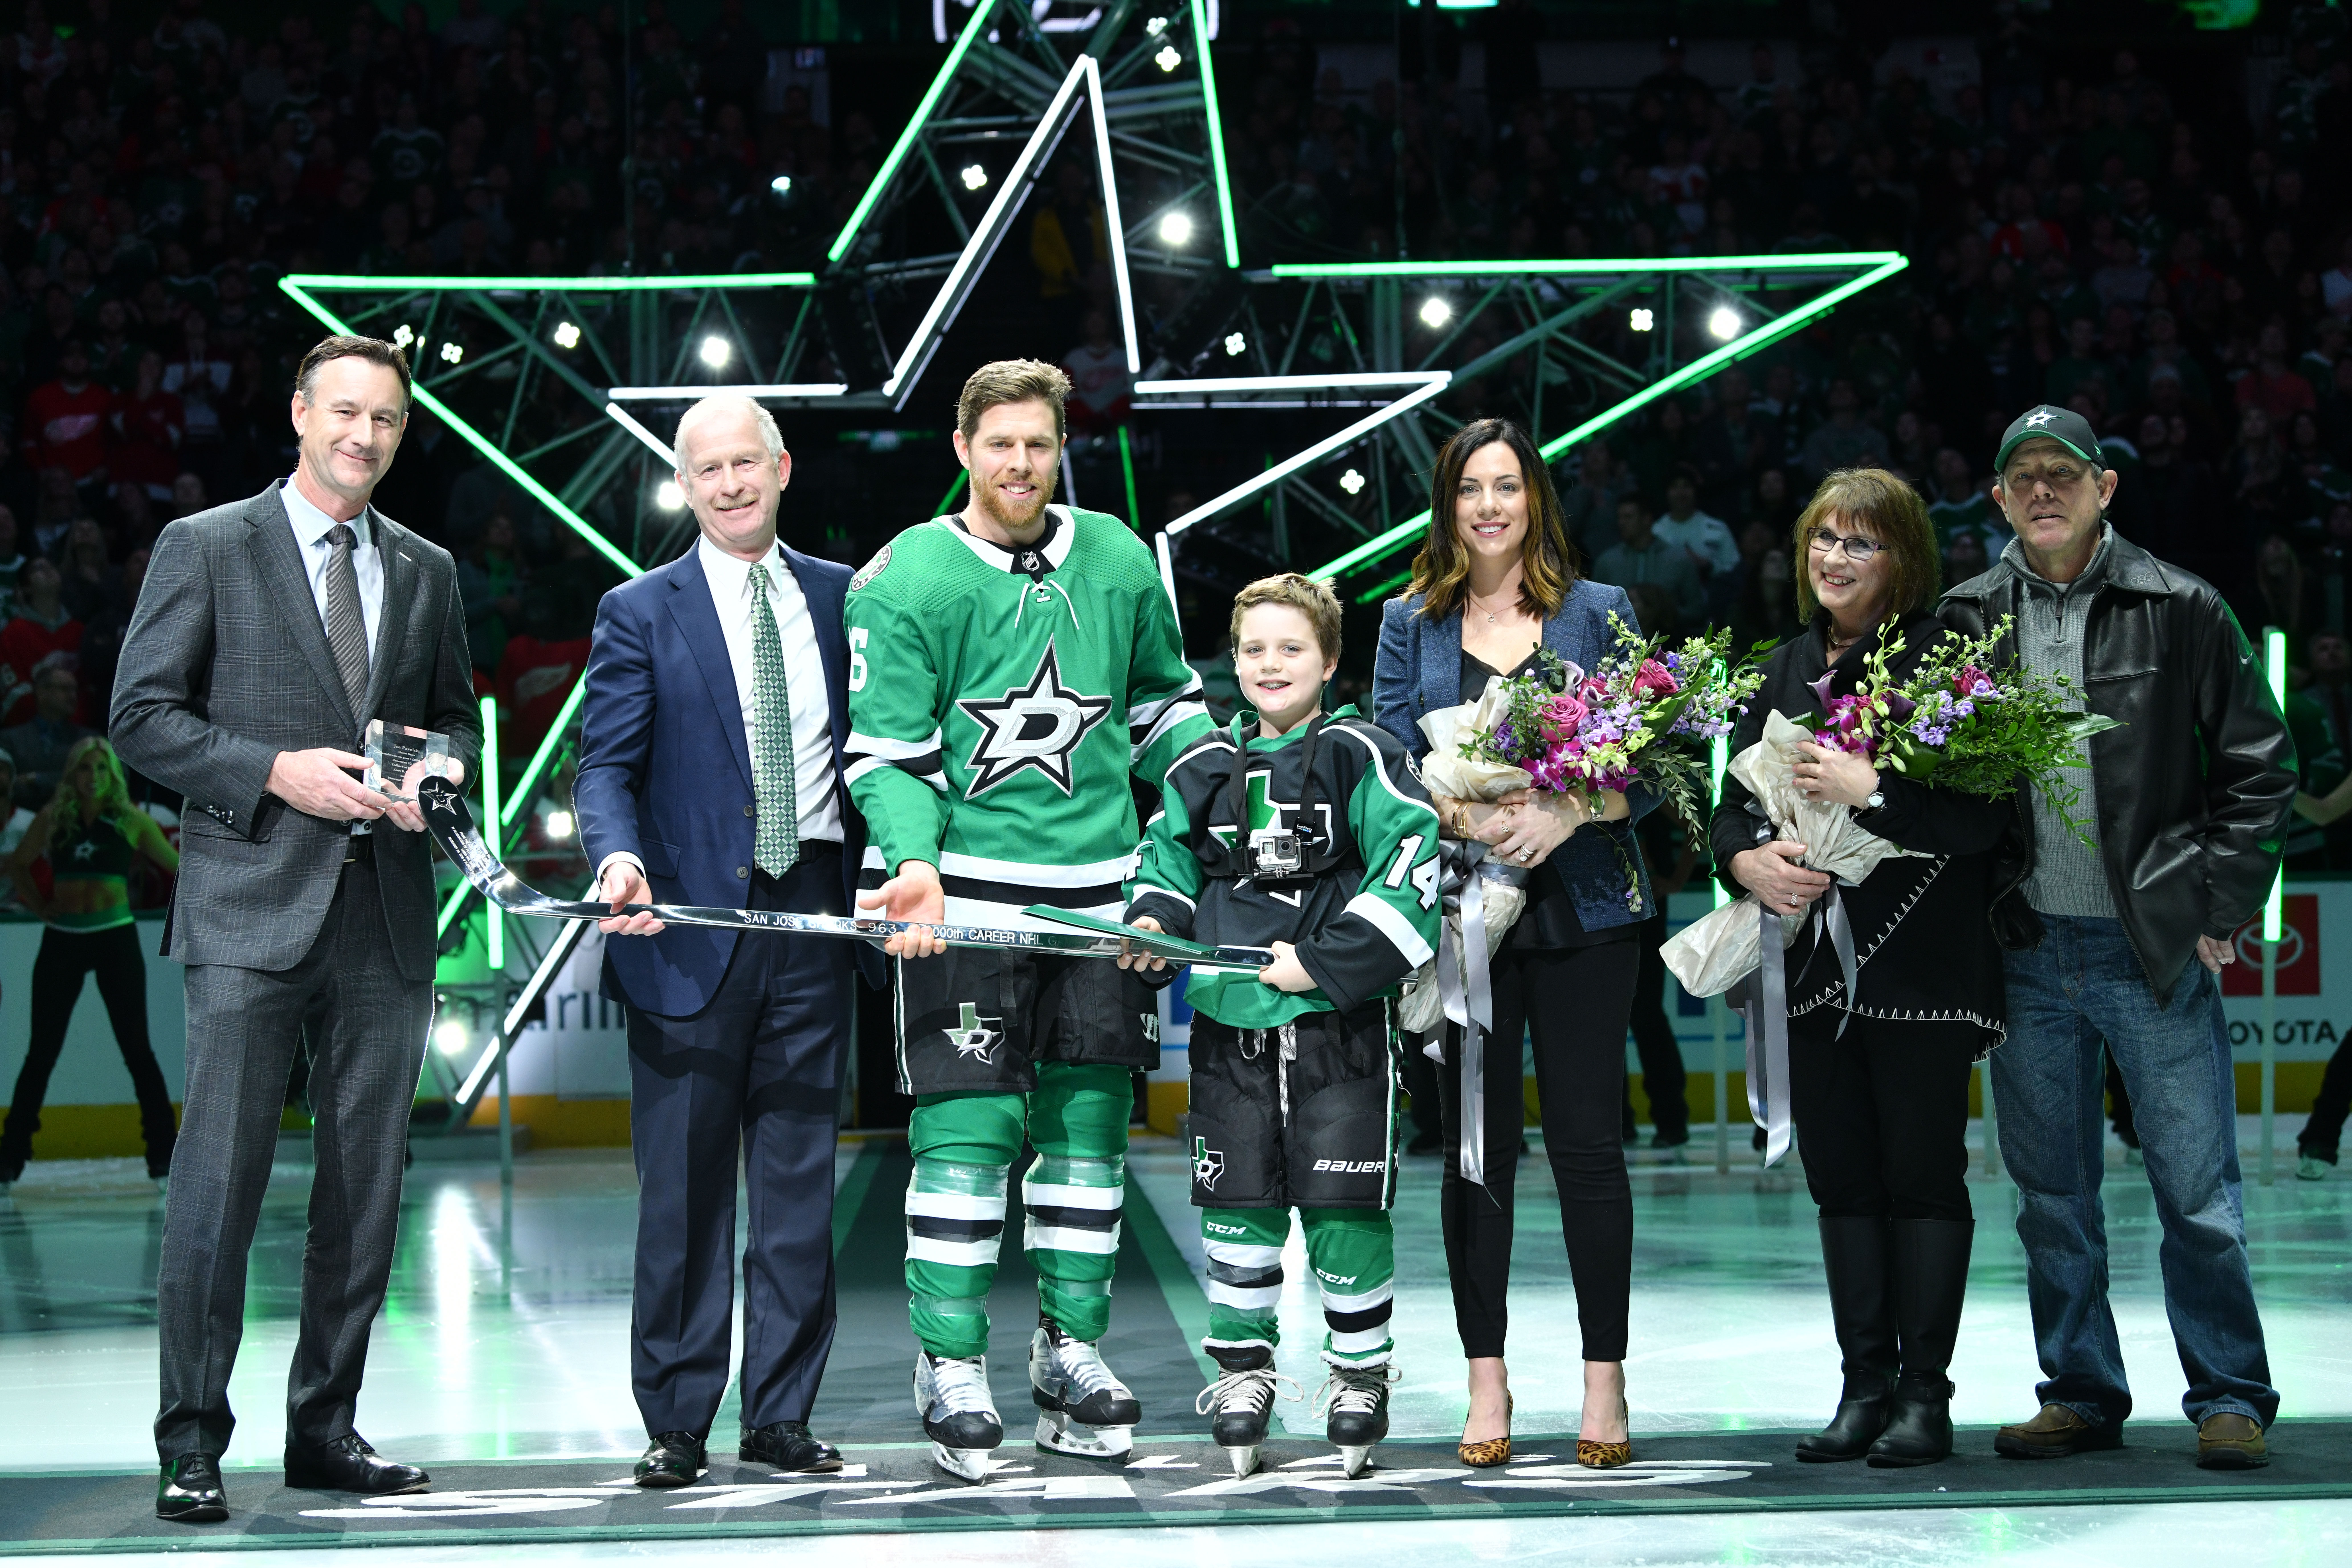 Joe Pavelski #16 of the Dallas Stars is honored during a pre-game ceremony for his recent 1000th NHL game played milestone by Dallas Stars Team President Brad Alberts and General Manager Jim Nill before a game against the Detroit Red Wings at the American Airlines Center on January 3, 2019 in Dallas, Texas.